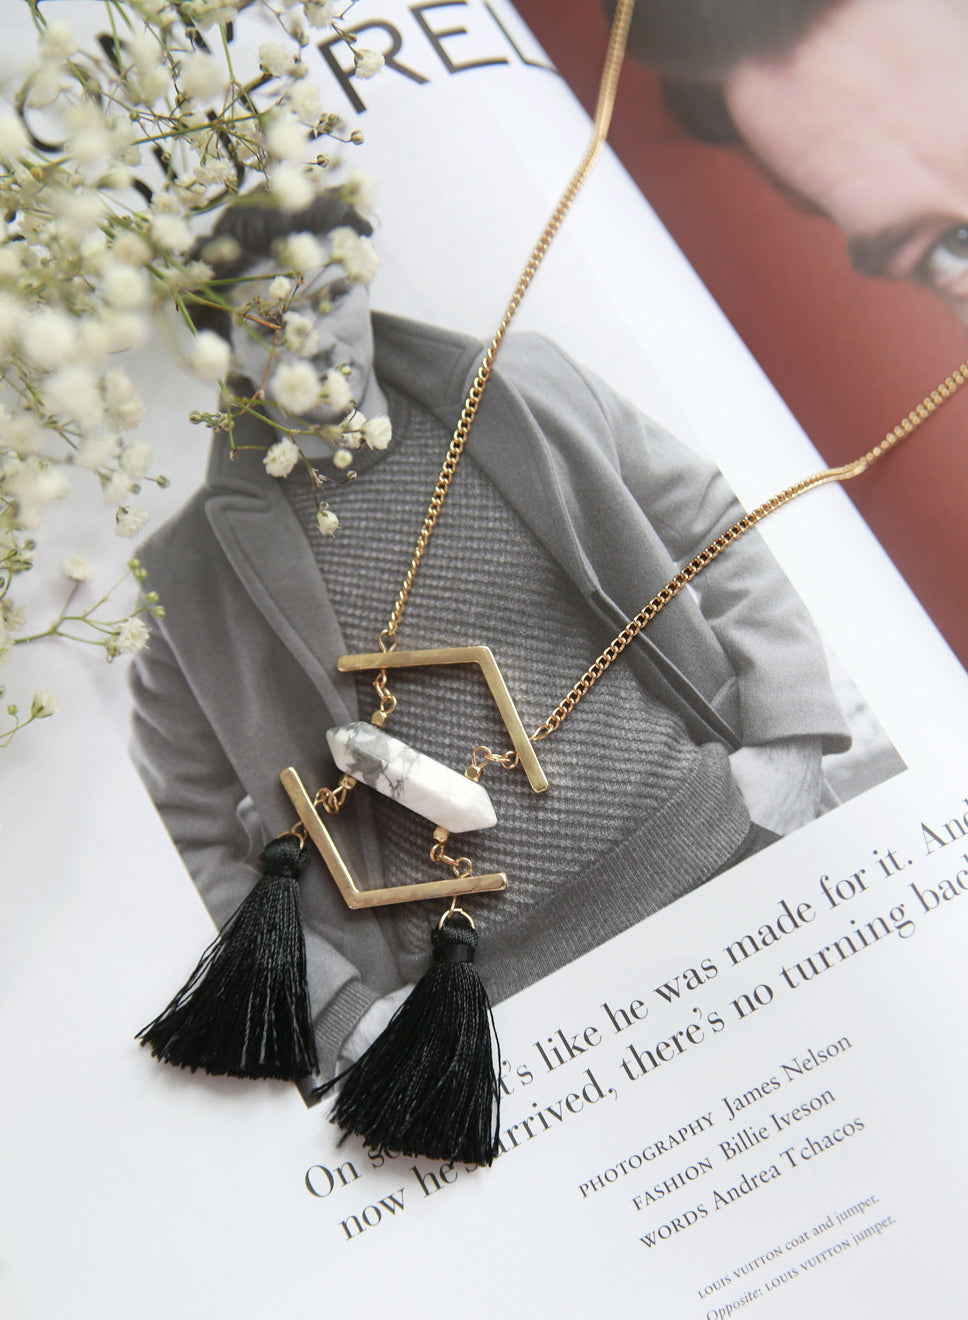 Aine Layered Tassels Necklace at $ 19.50 only sold at And Well Dressed Online Fashion Store Singapore